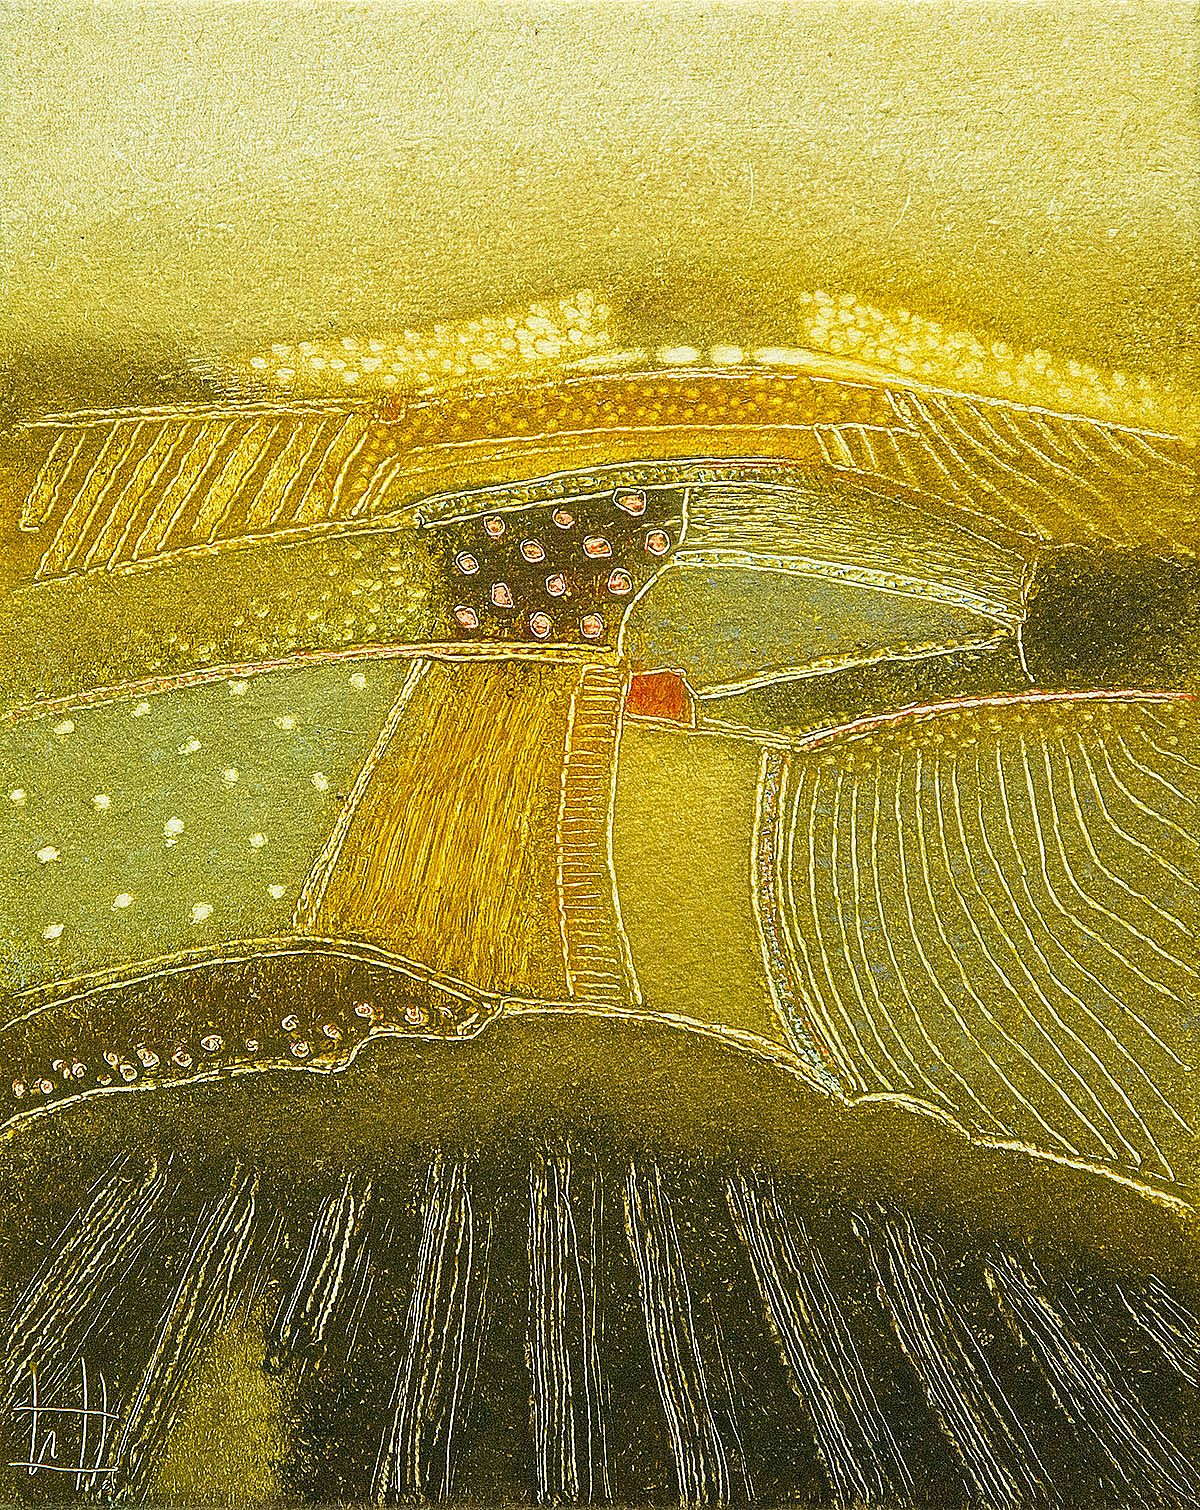 Fields of gold by Rob van Hoek